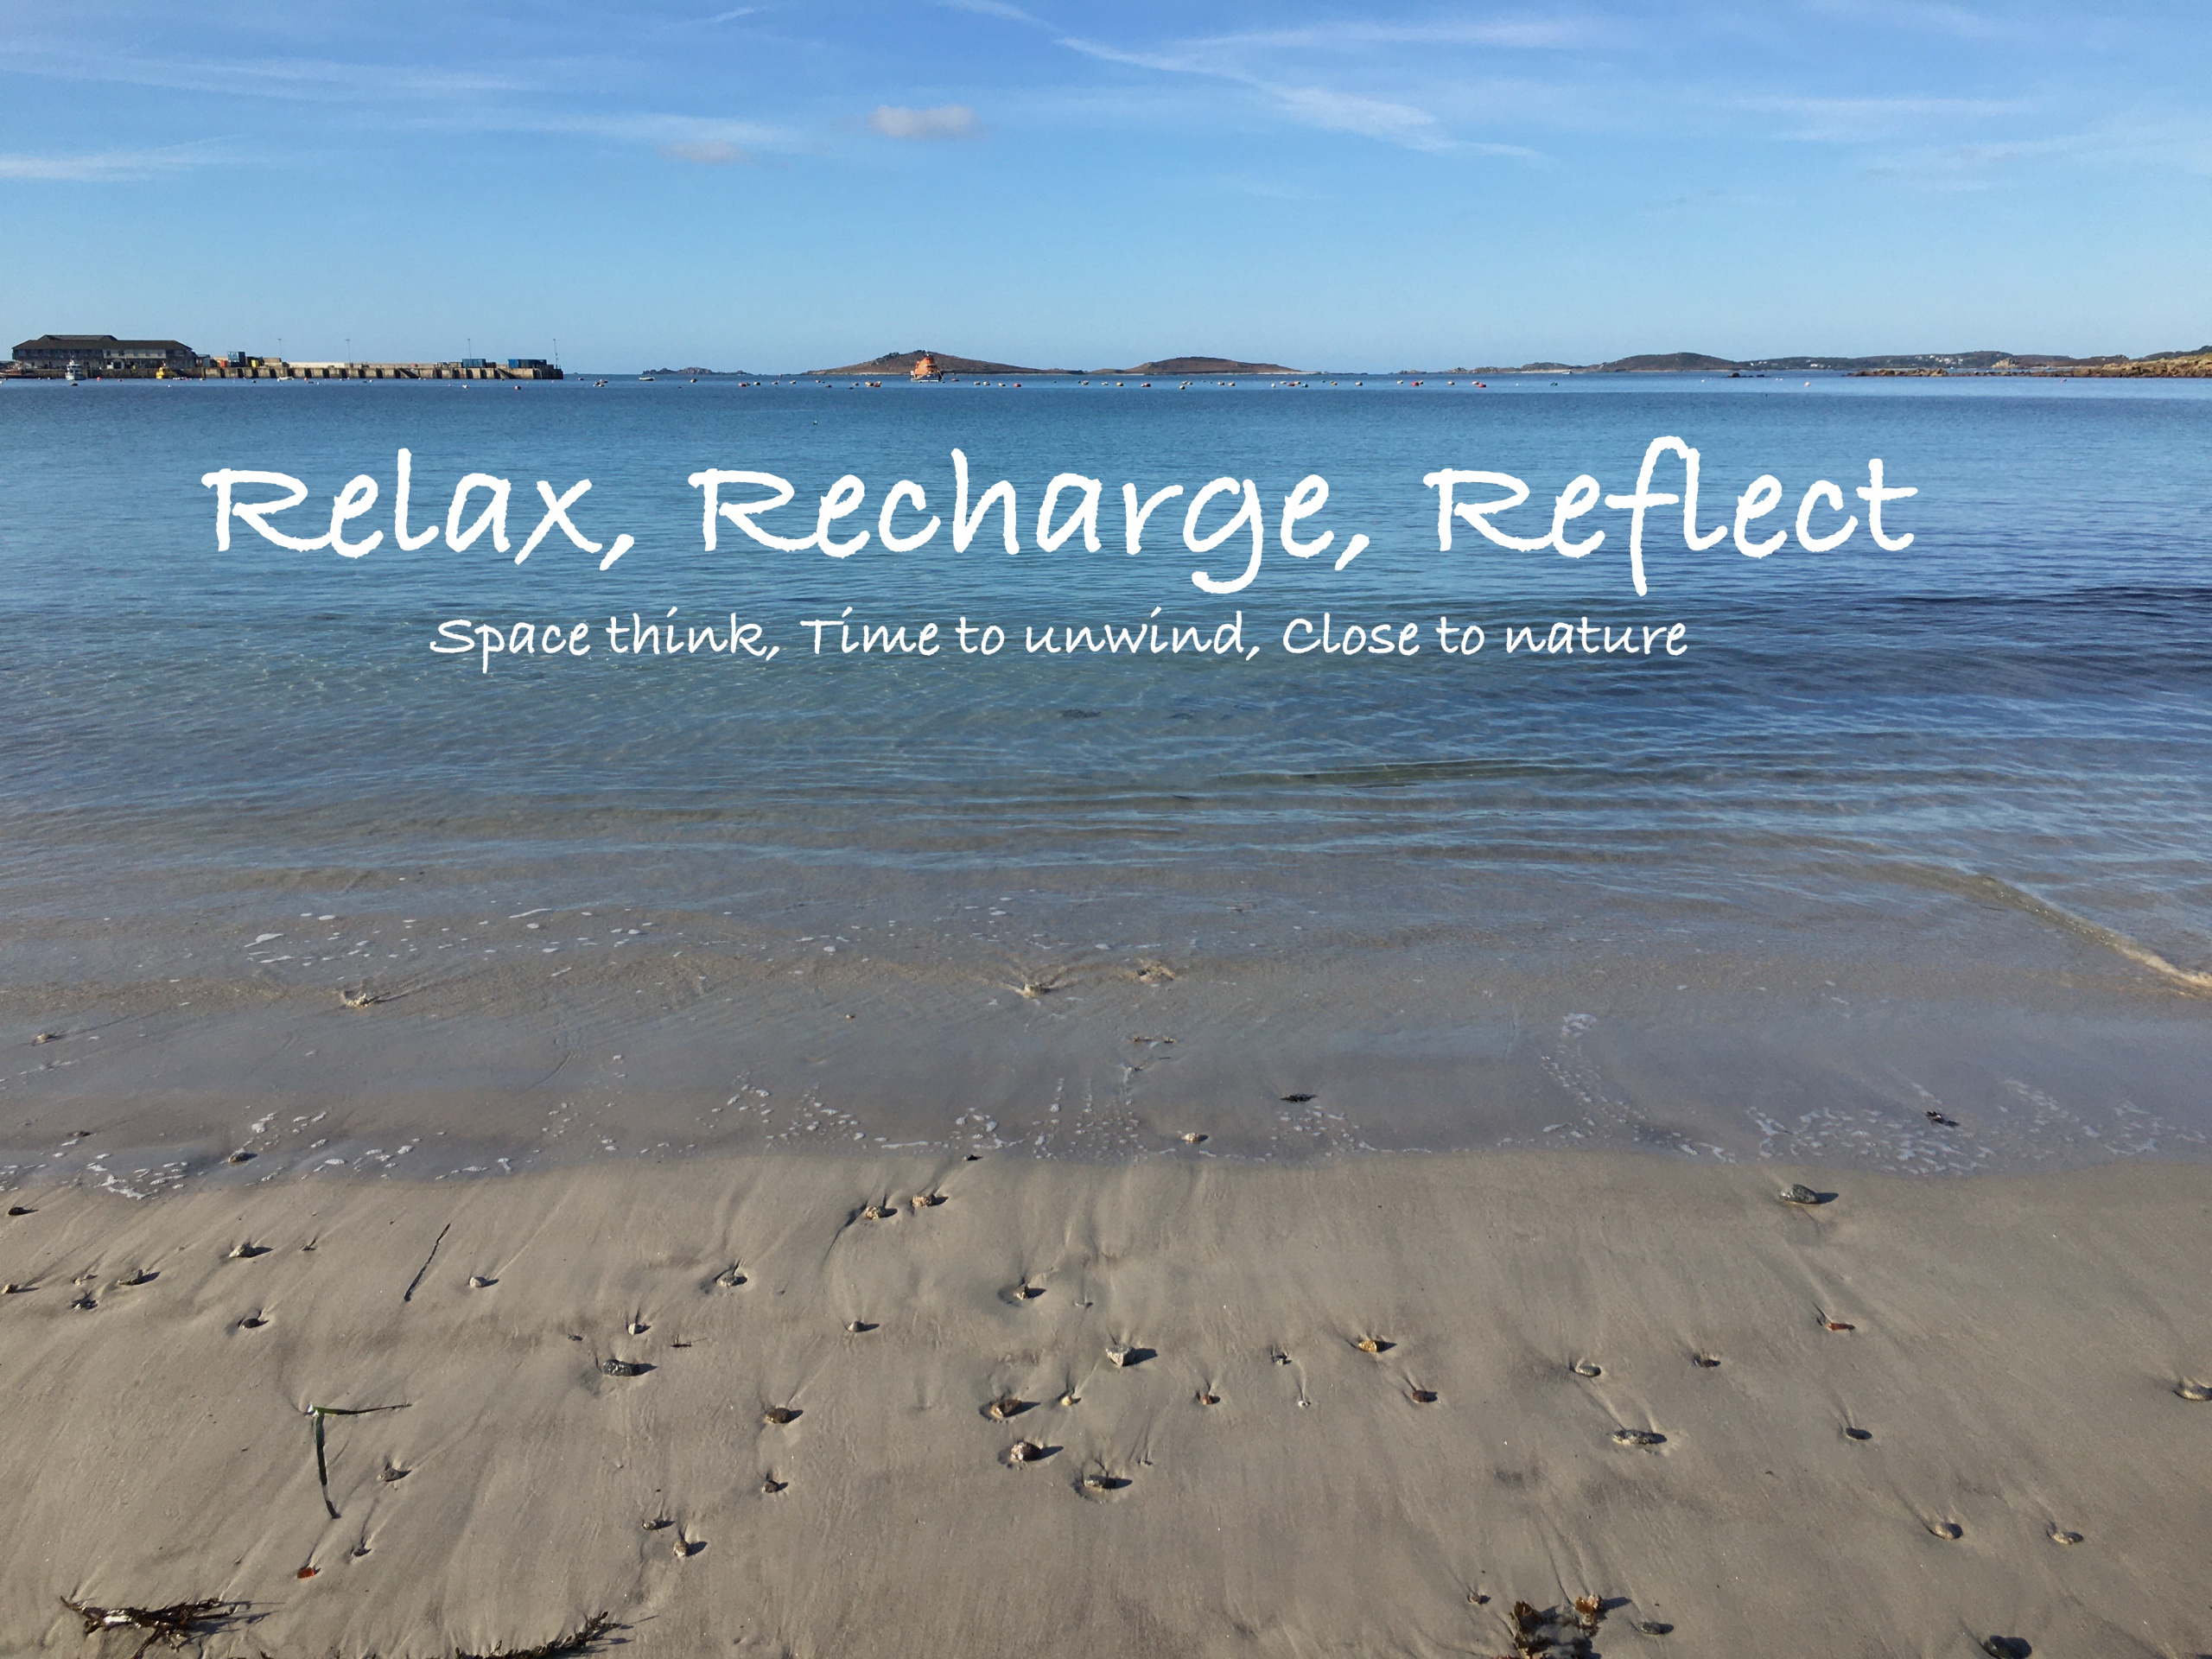 Relax, Recharge, Reflect